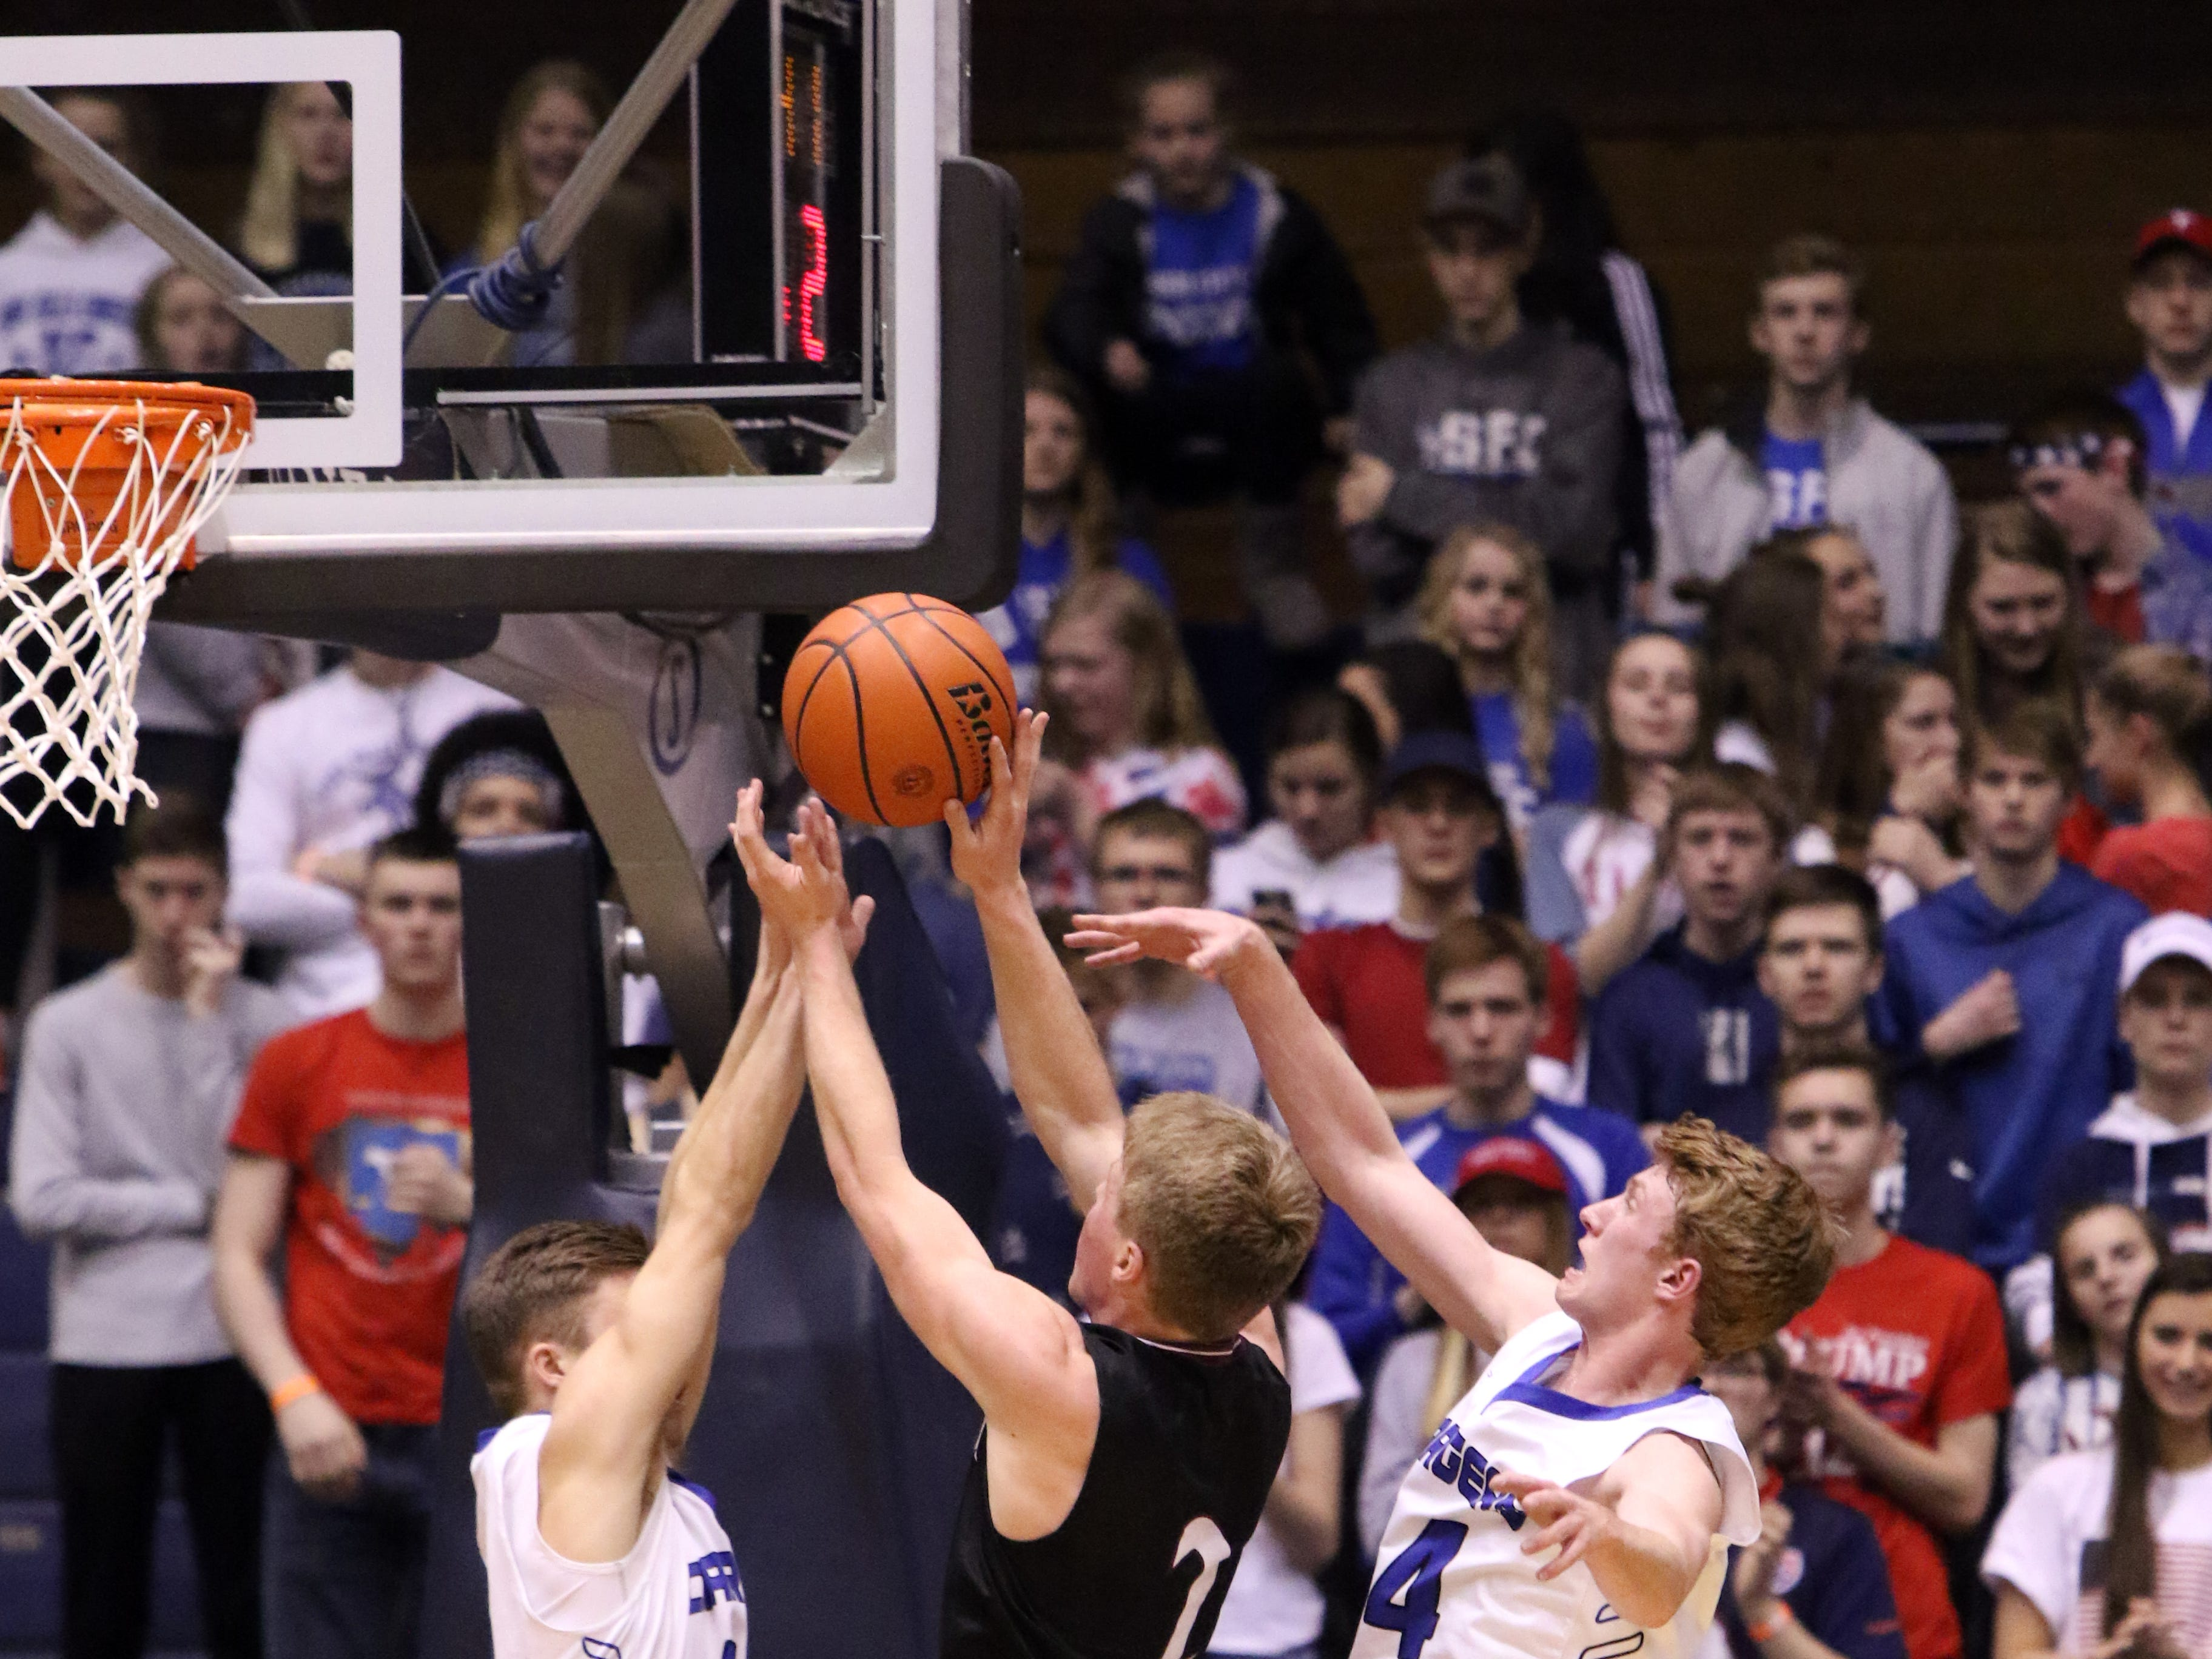 Dawson Mulder (L) and Gavin Schipper of Sioux Falls Christian attempt to block the shot by Caileb Reilly of Madison during Thursday's game at the Arena.